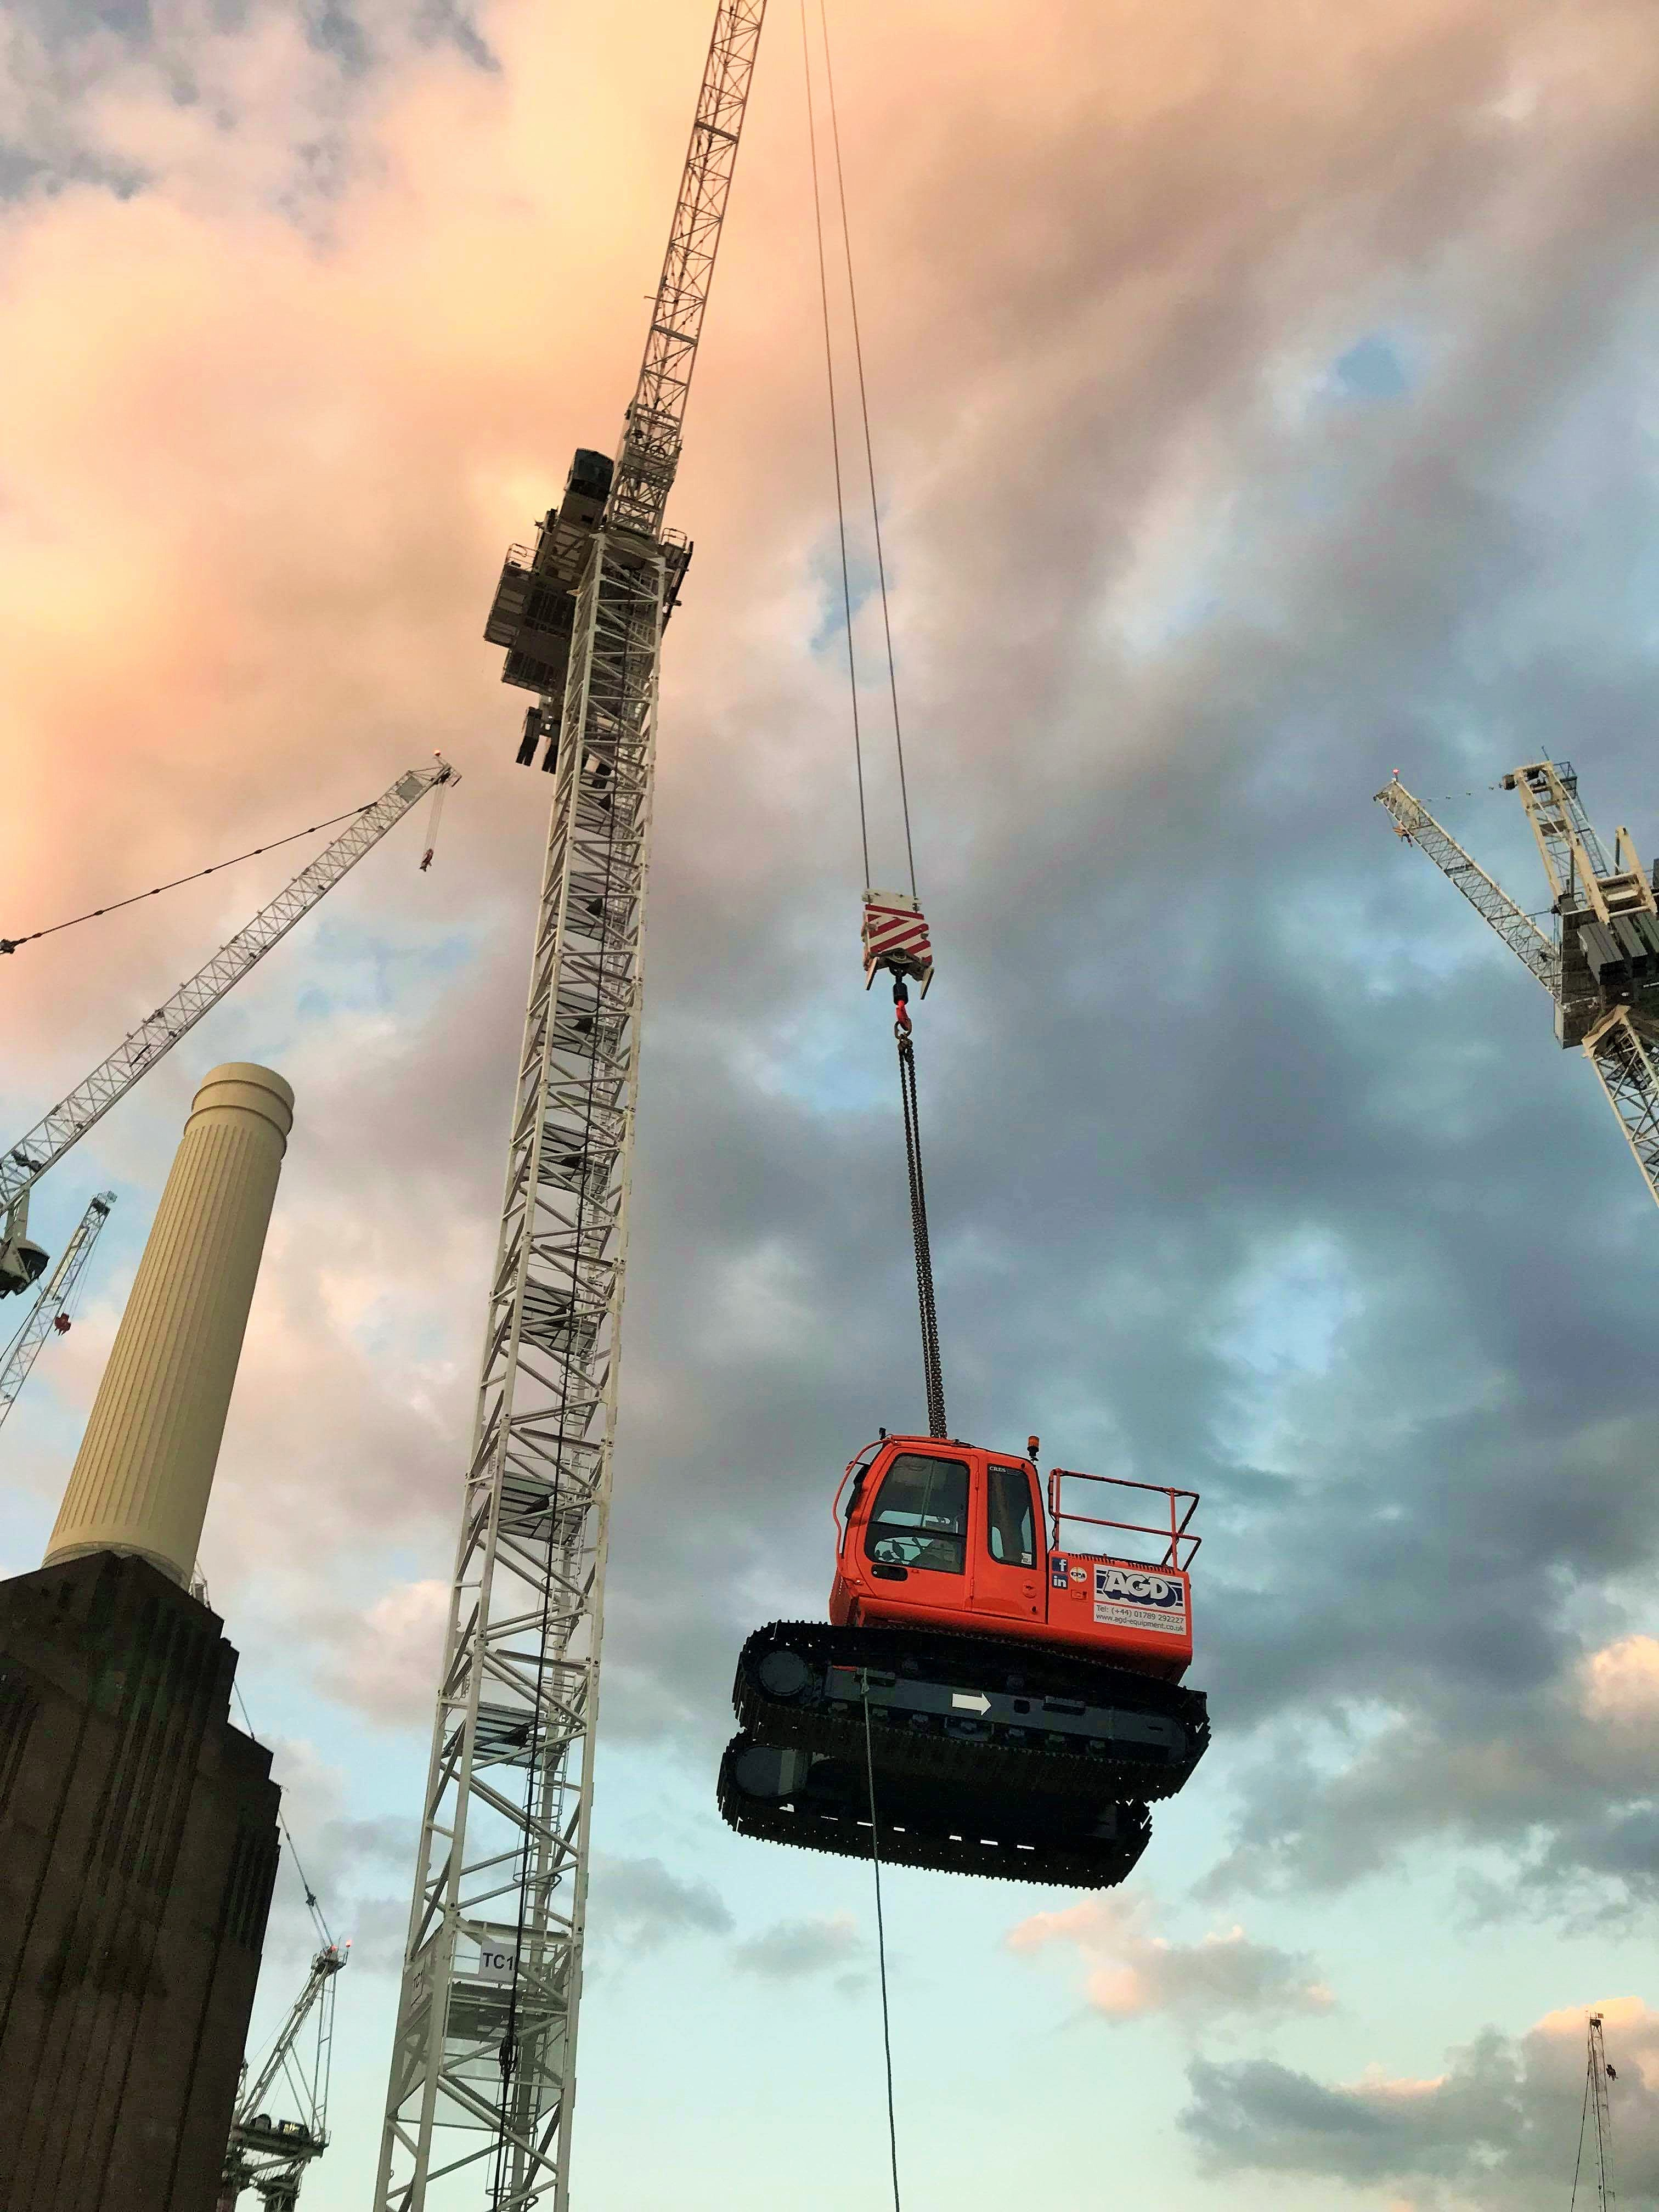 AGD flies again! 8 tons Hitachi mini crane lifted in at Battersea